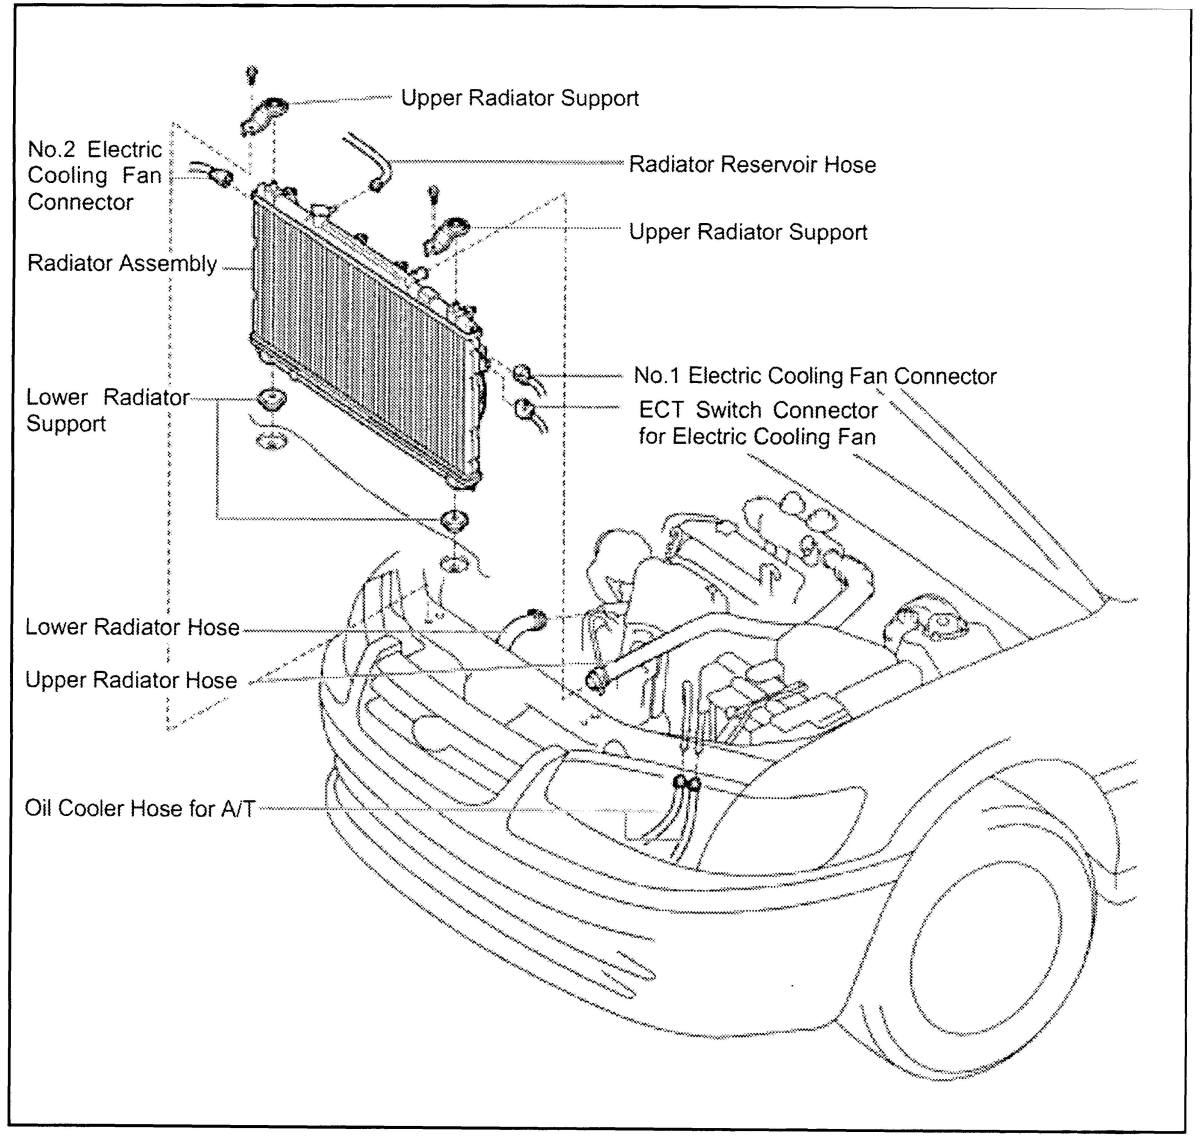 cooling auto diagram leviton 220v outlet wiring diy toyota camry radiator replacement with video